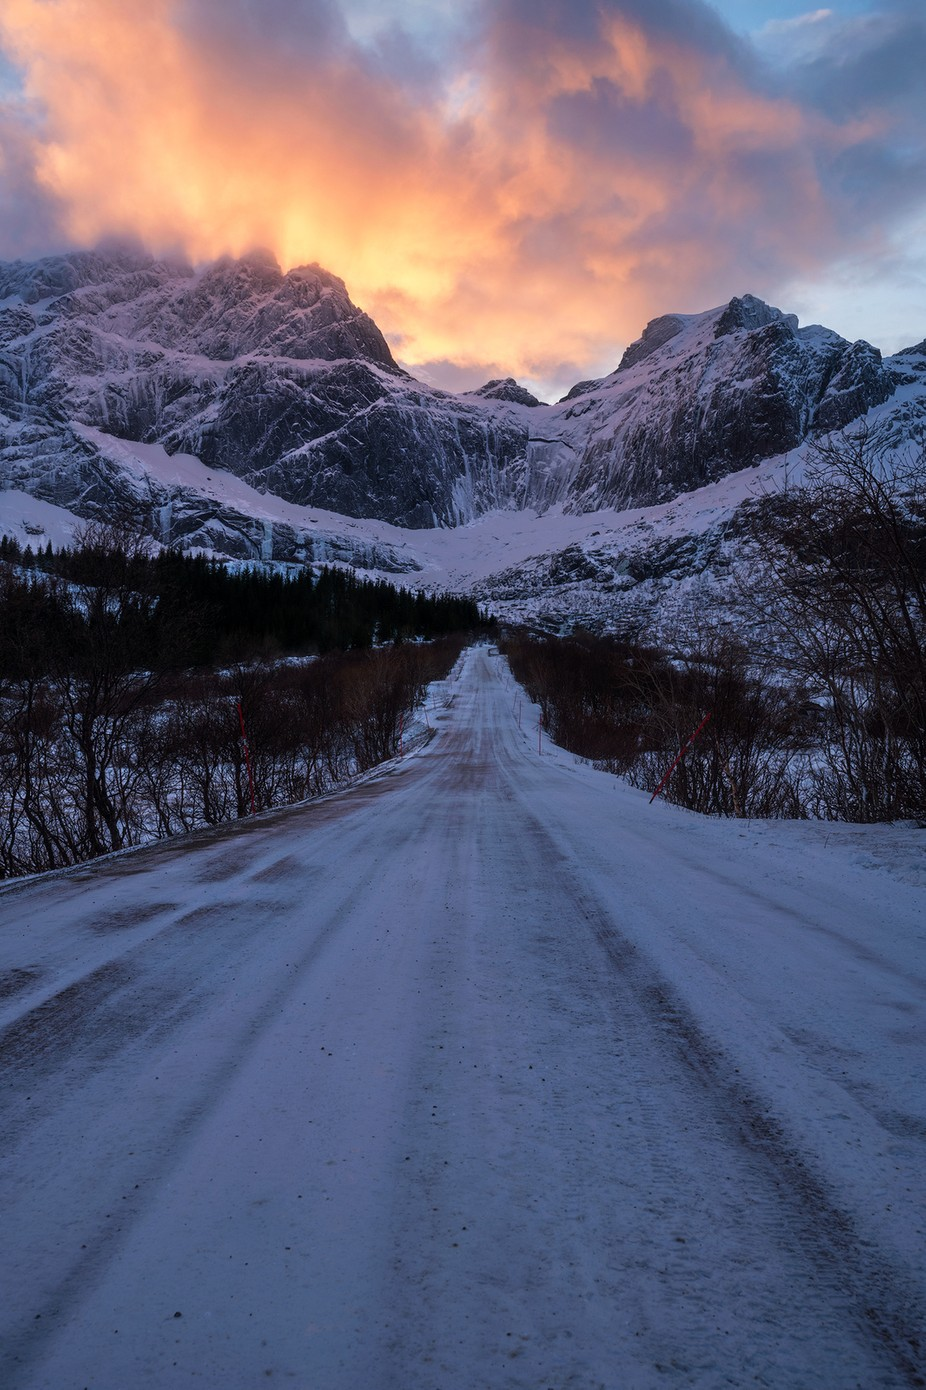 The Long Road Home by shanewheelphoto - Straight Roads Photo Contest